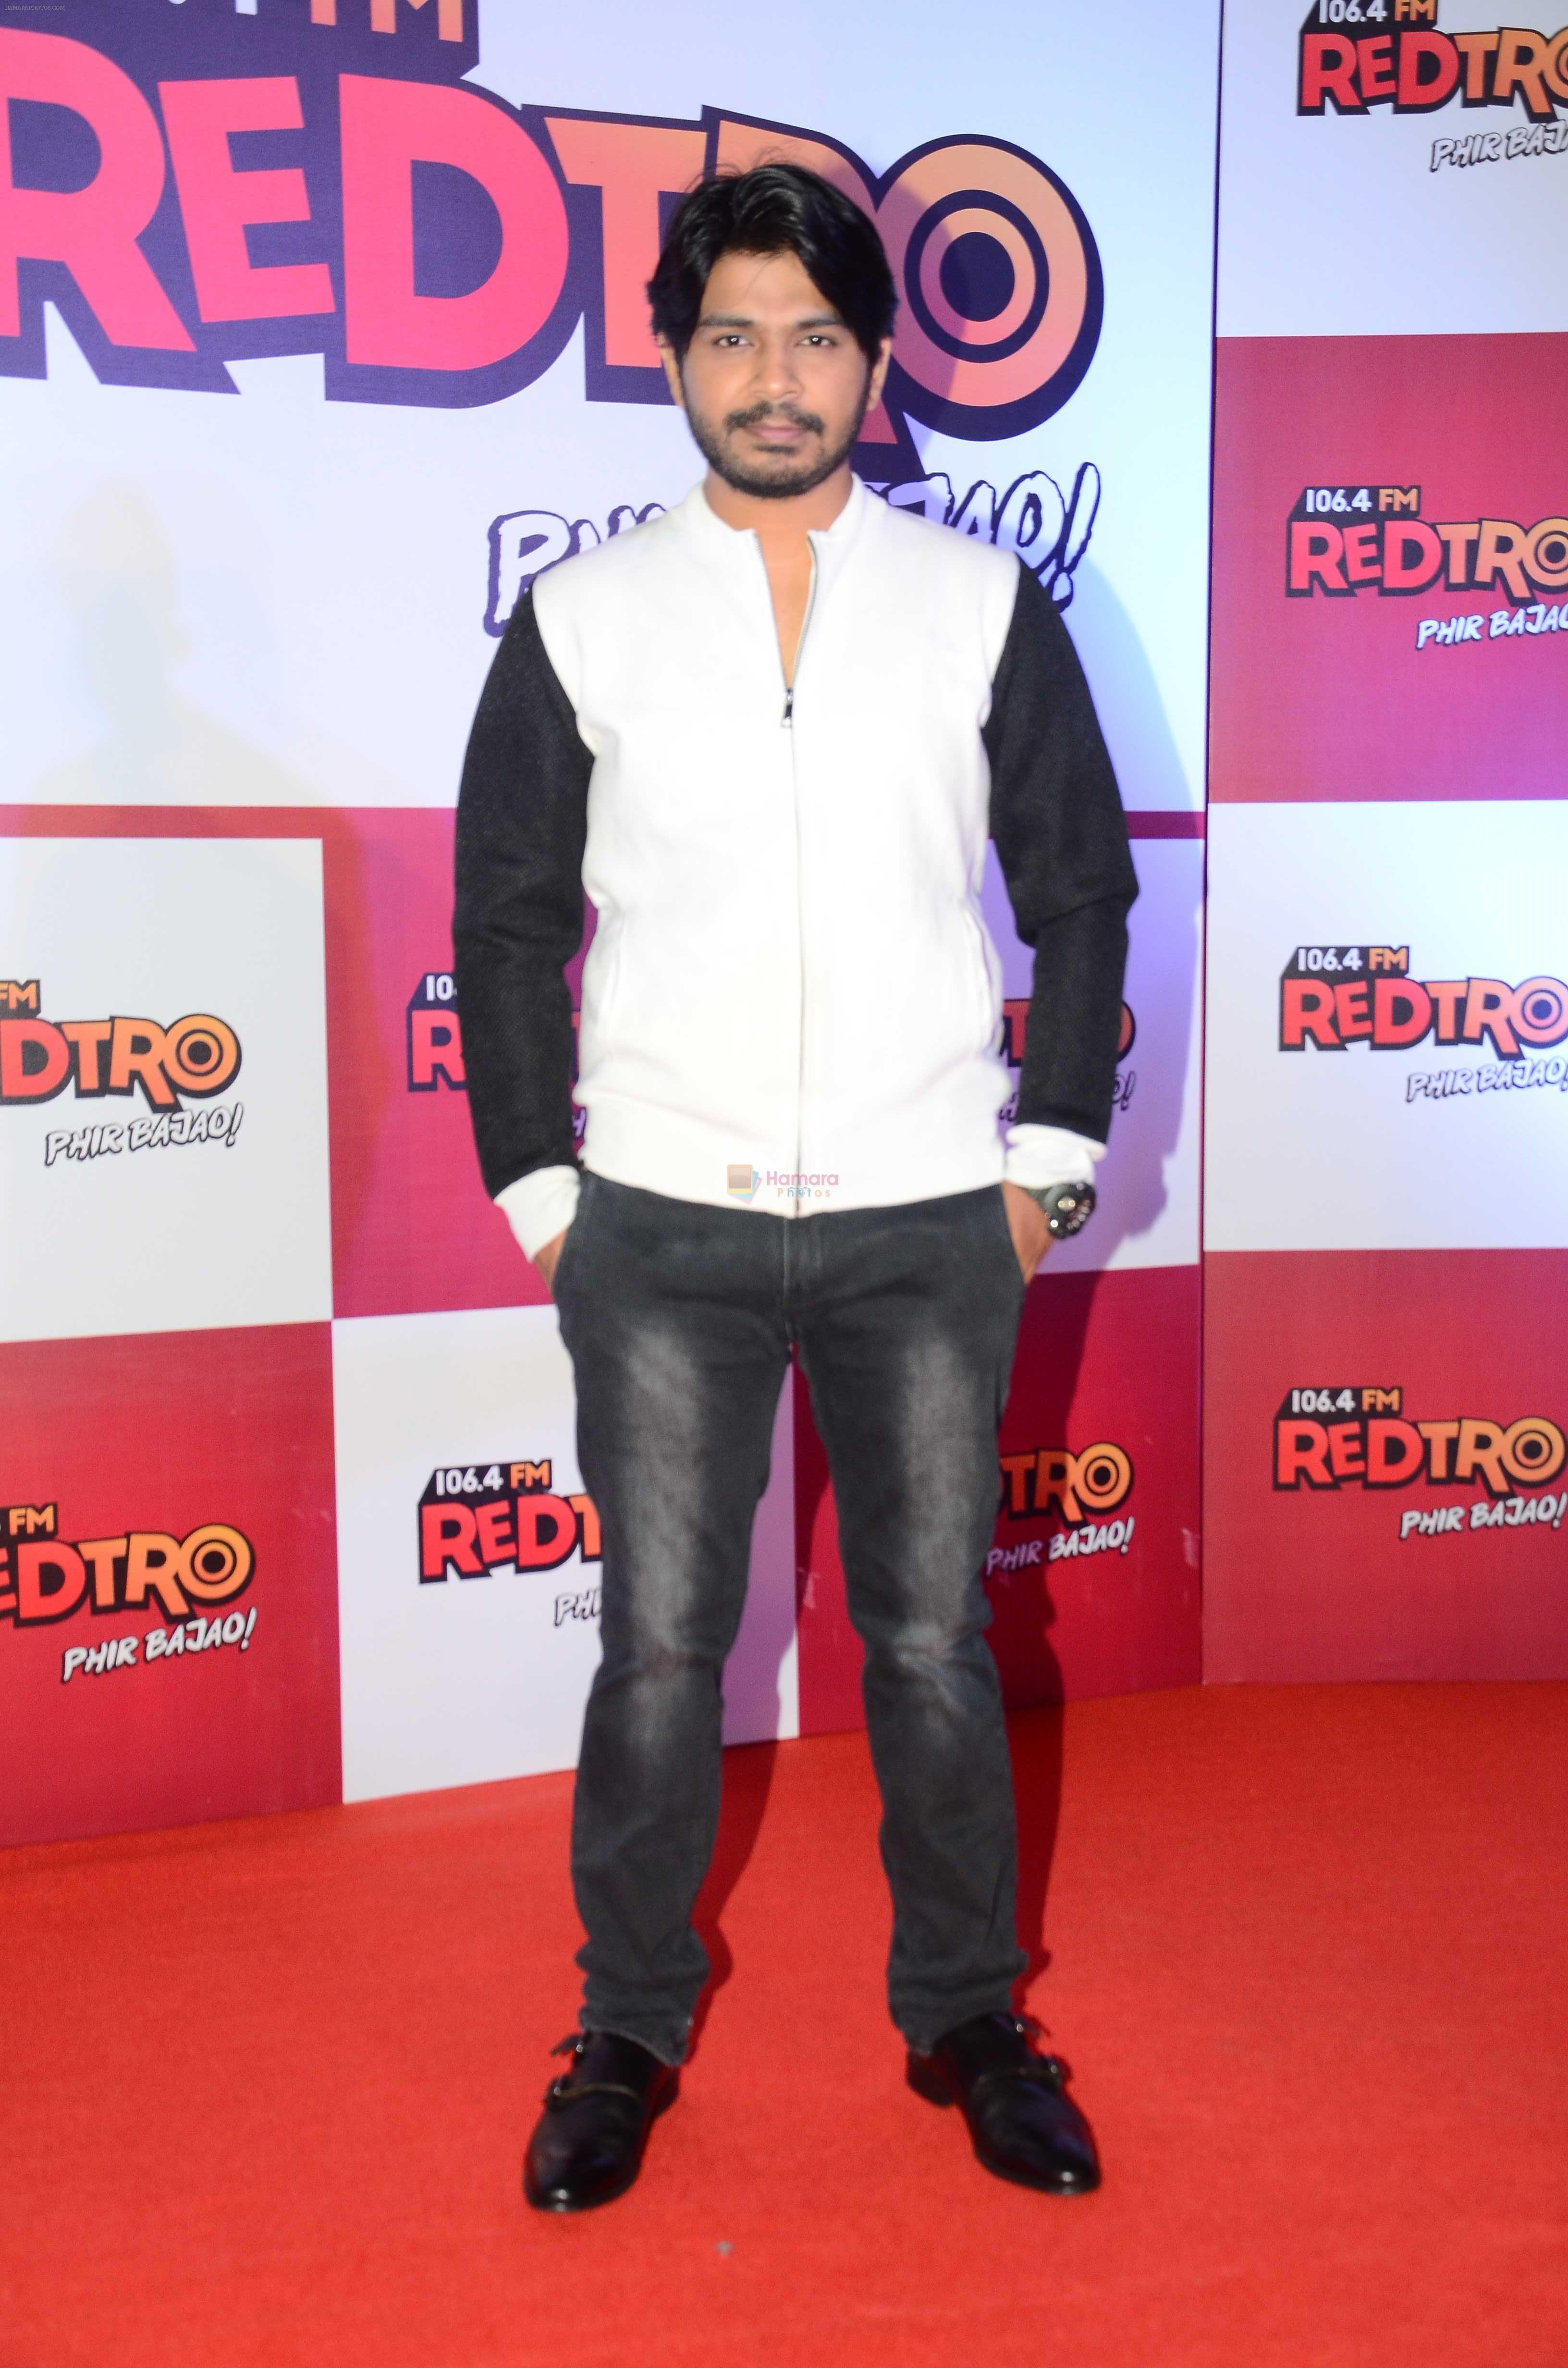 Ankit Tiwari during the party organised by Red FM to celebrate the launch of its new radio station Redtro 106.4 in Mumbai India on 22 July 2016